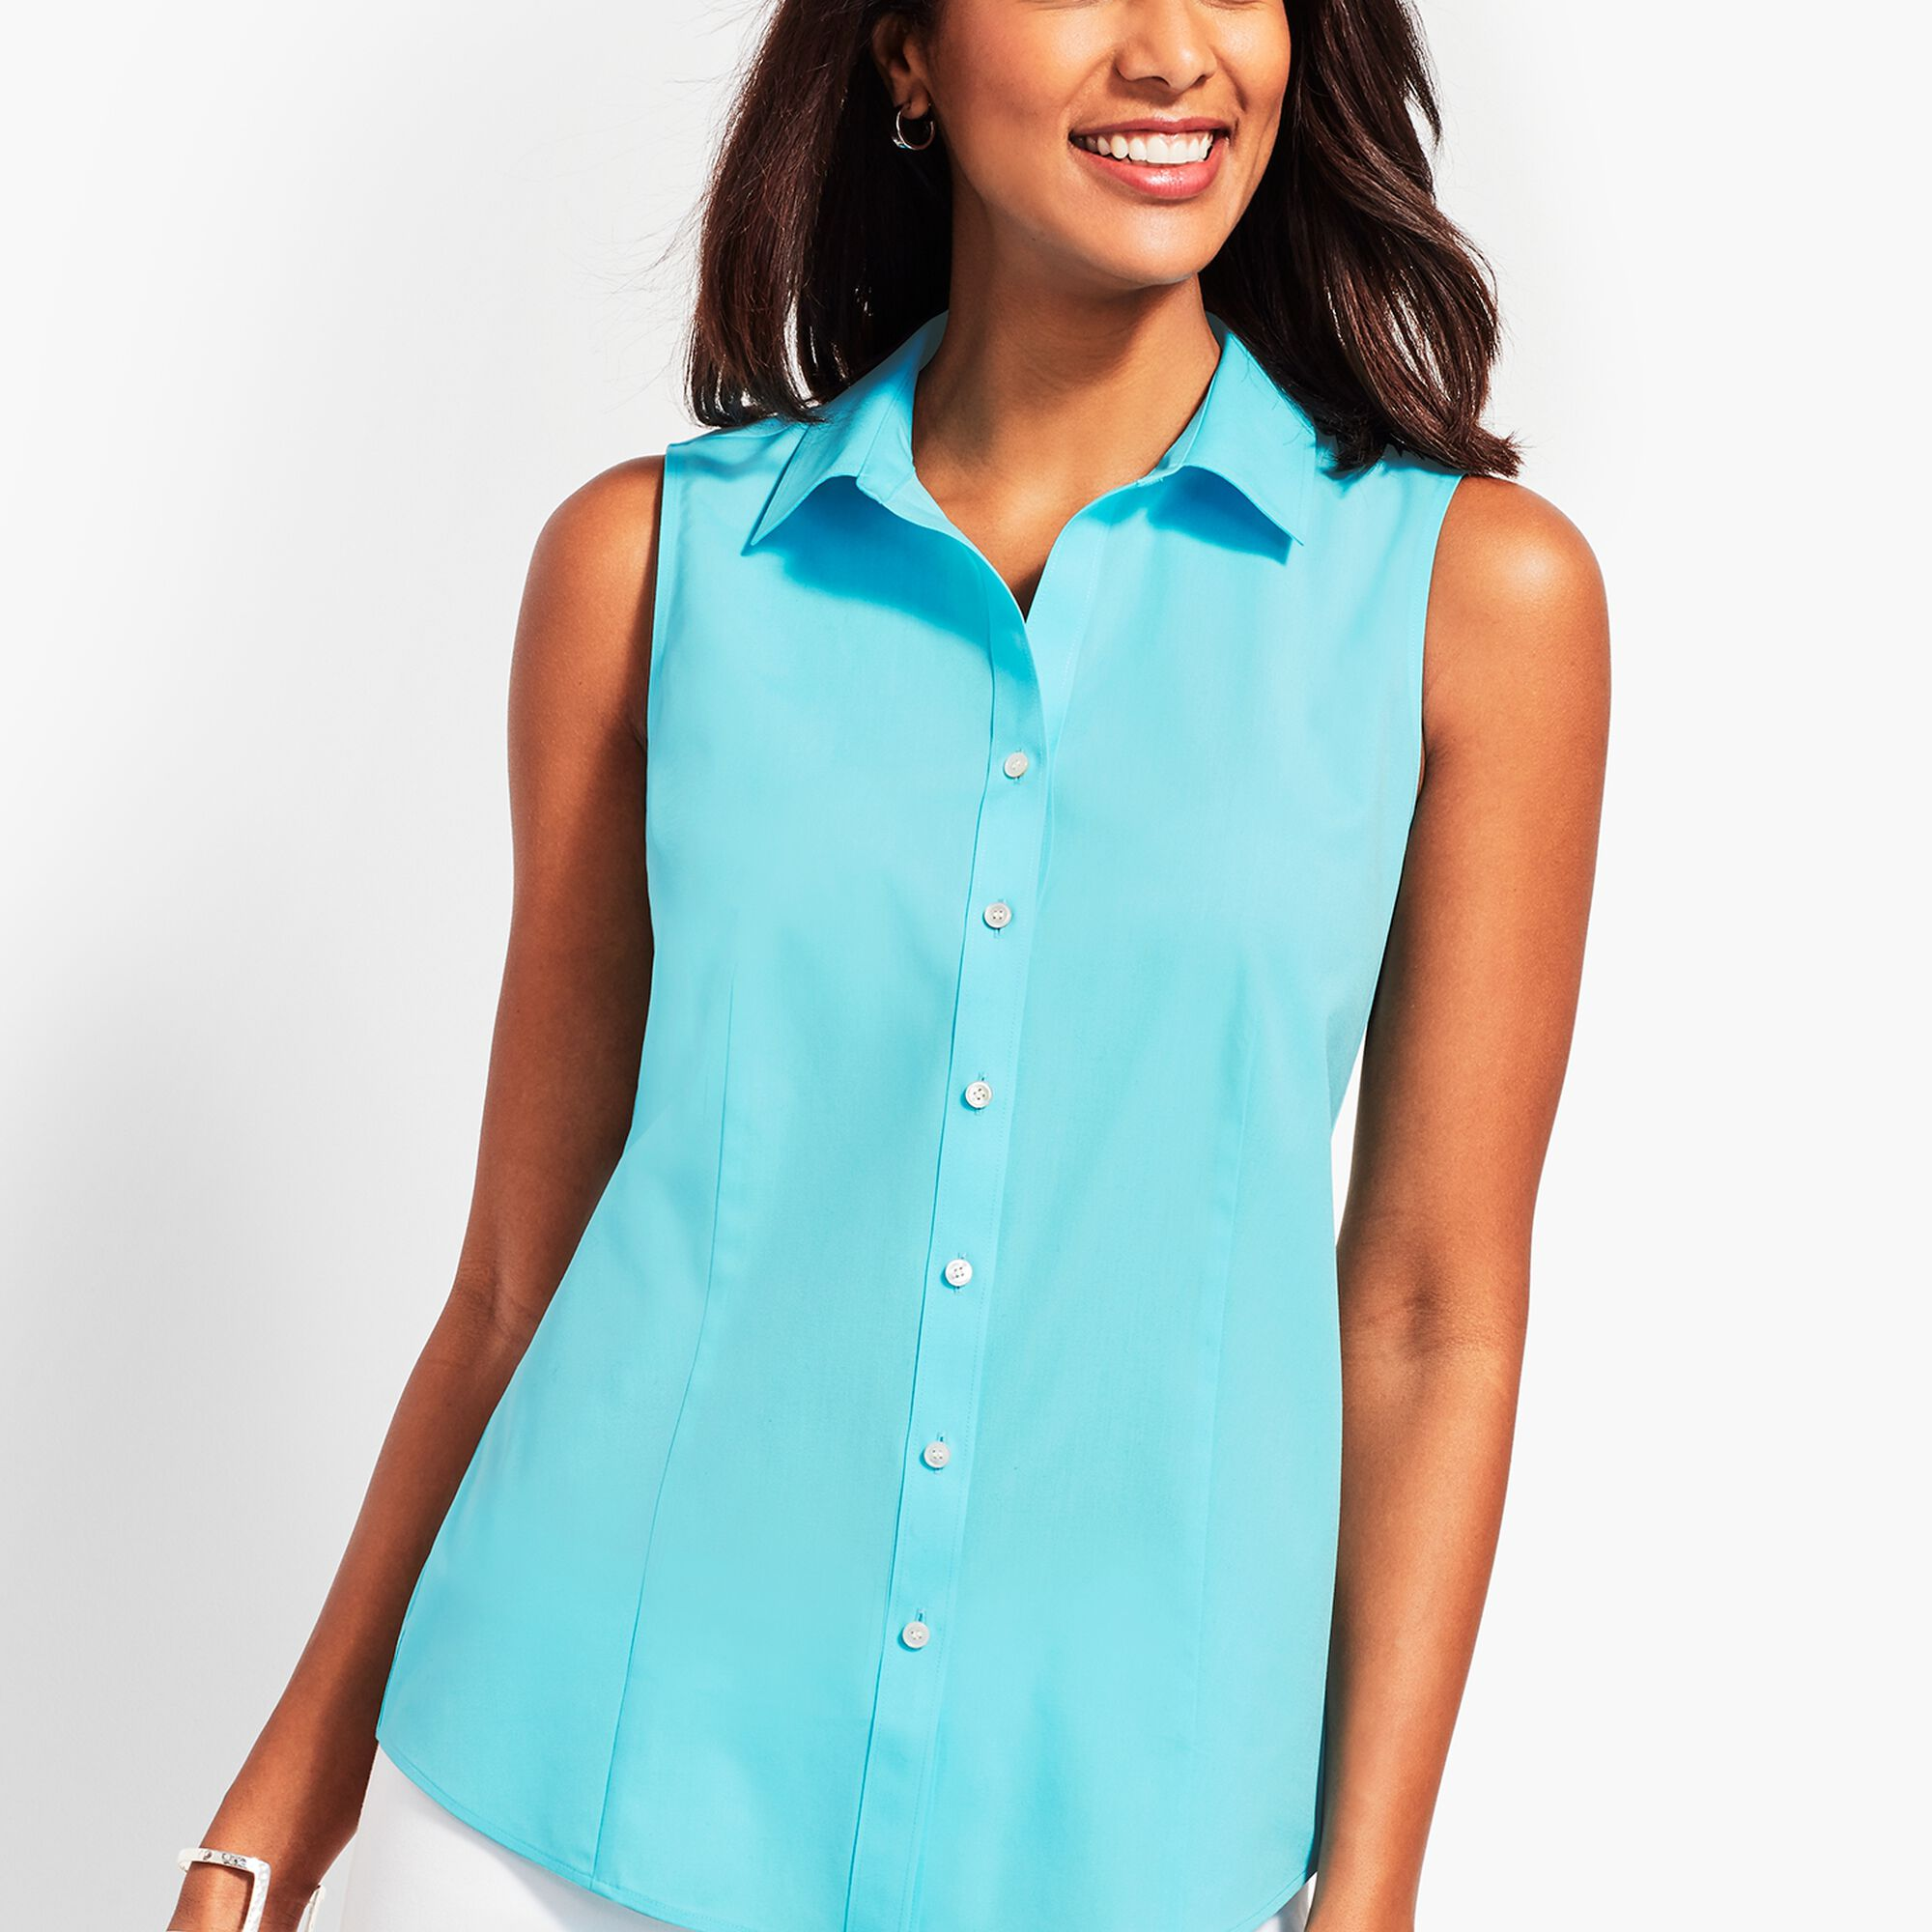 8bfa394c218a Images. The Classic Sleeveless Button Front Shirt